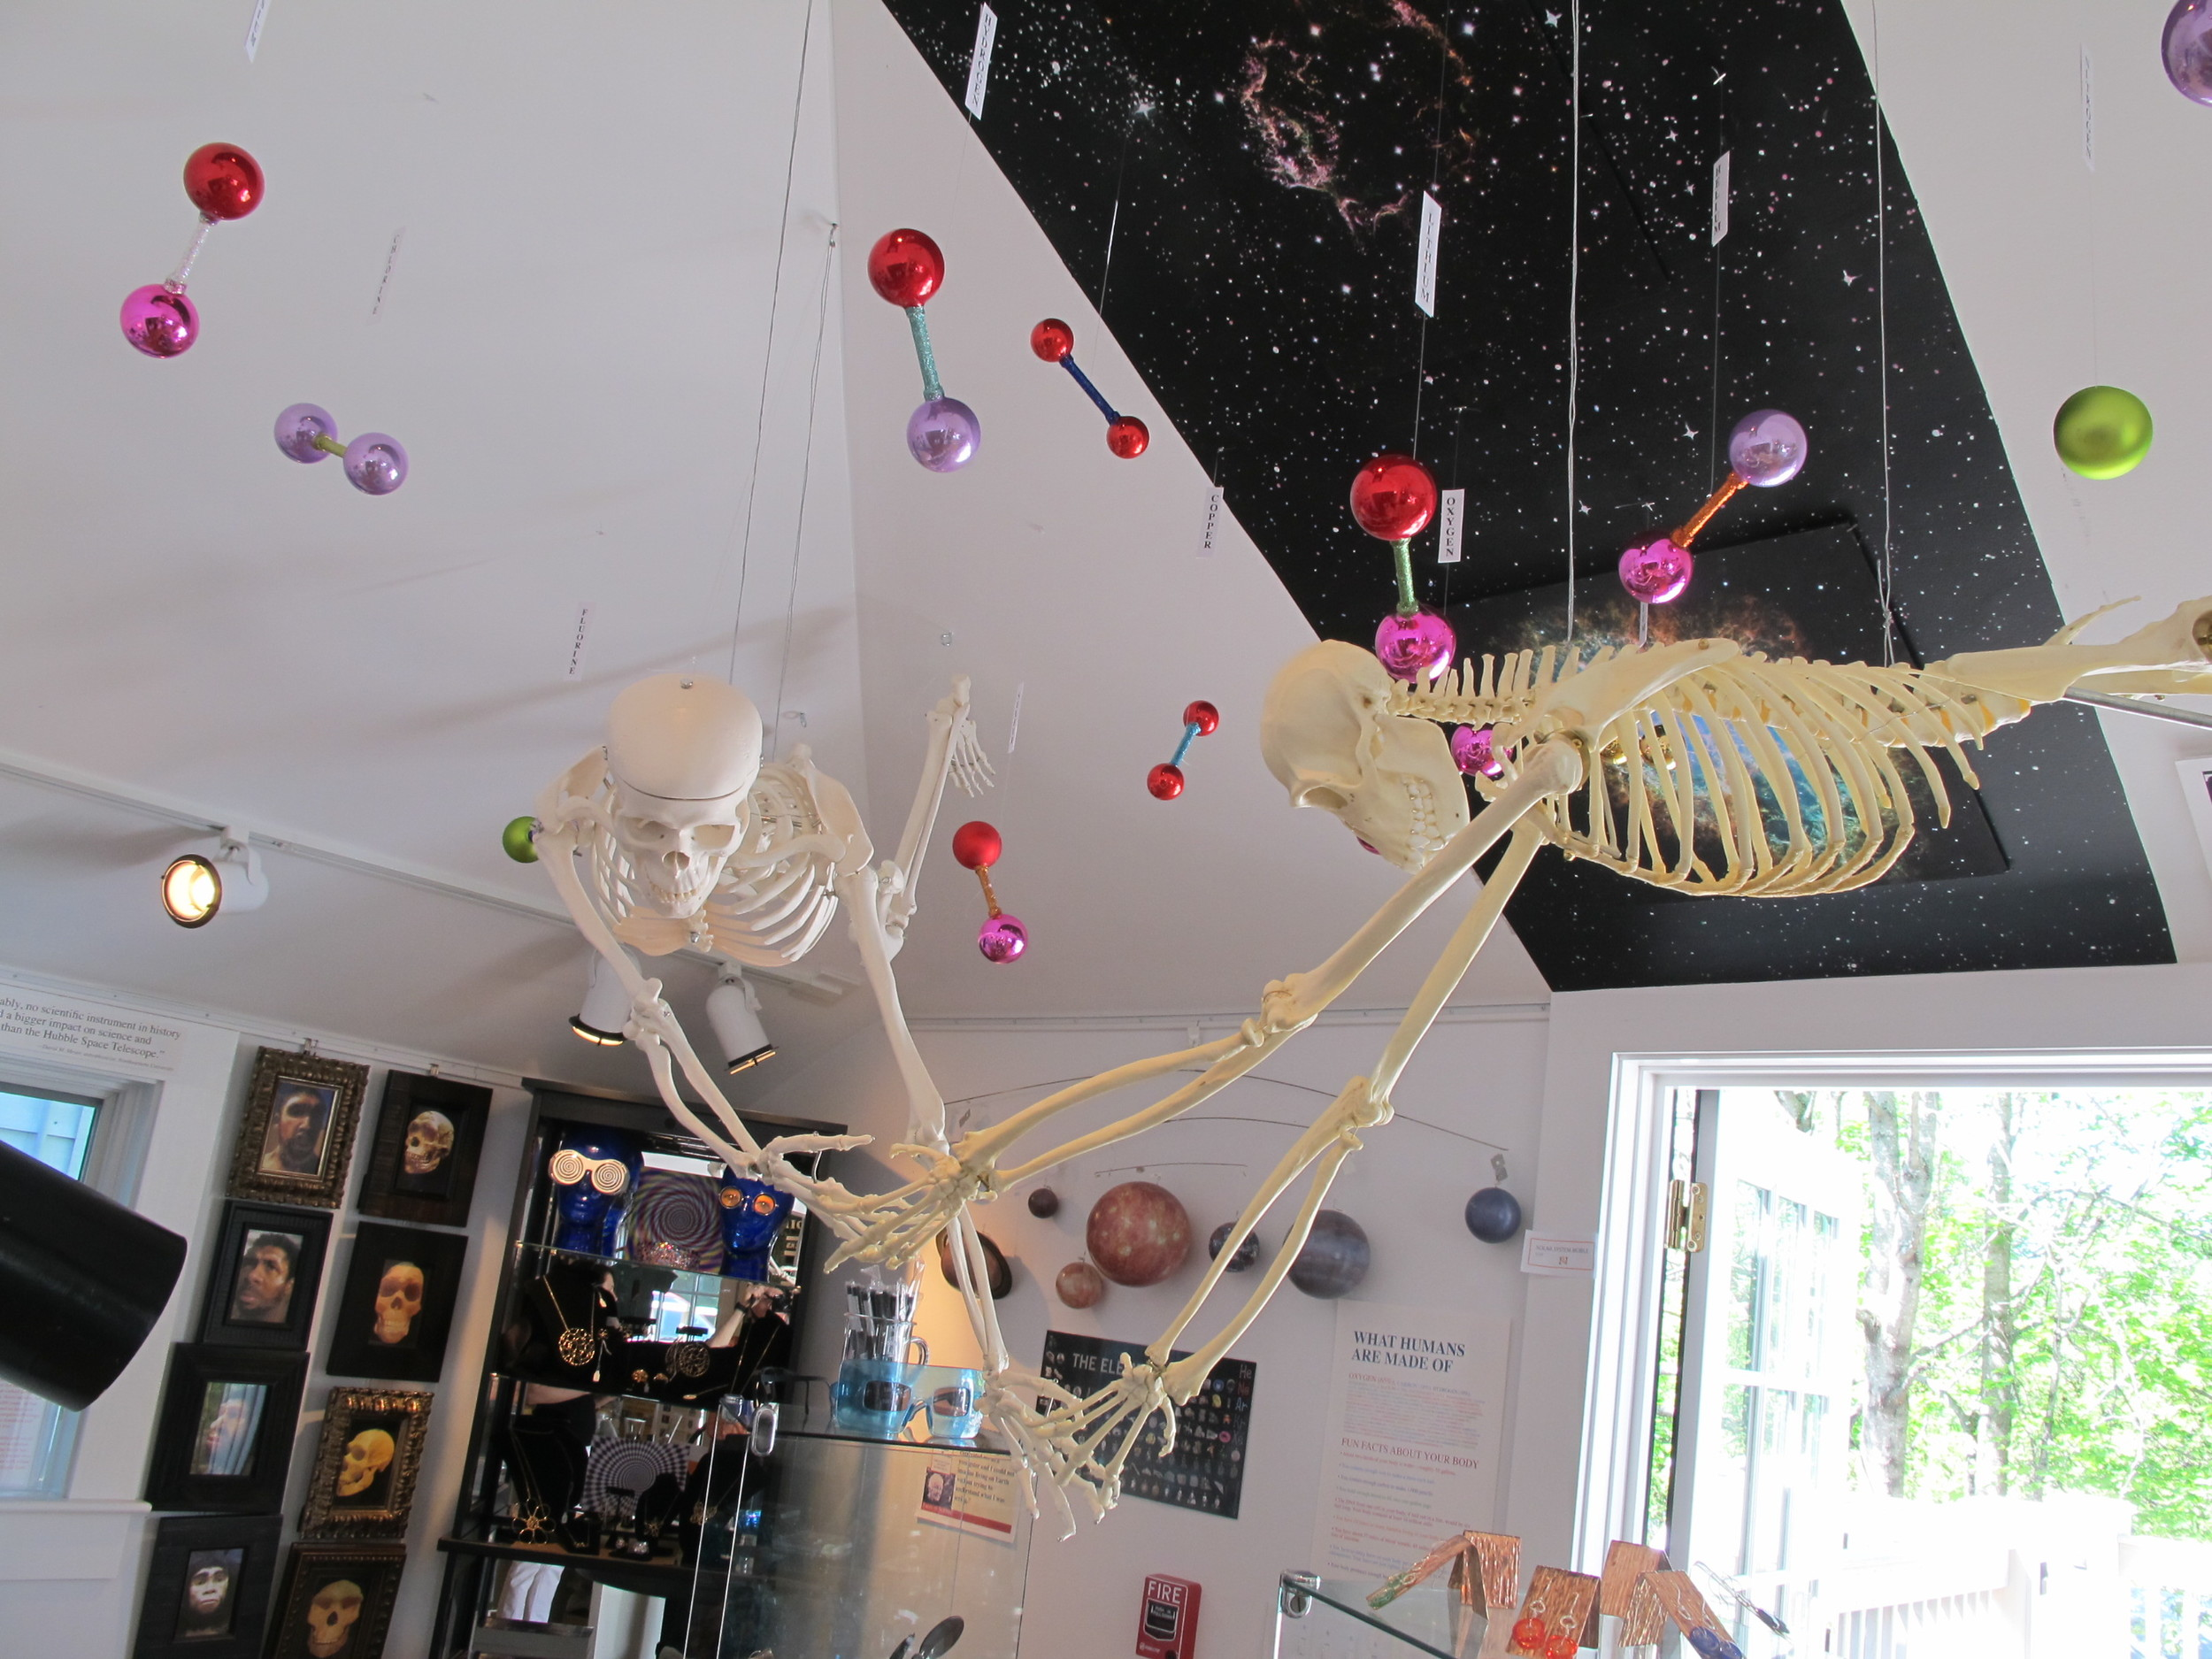 Things are flying in our astronomy room, which includes our own Hubble telescope (or perhaps I should say telly-scope) and a look at the creation in outer space of the chemical elements that make up our bodies.